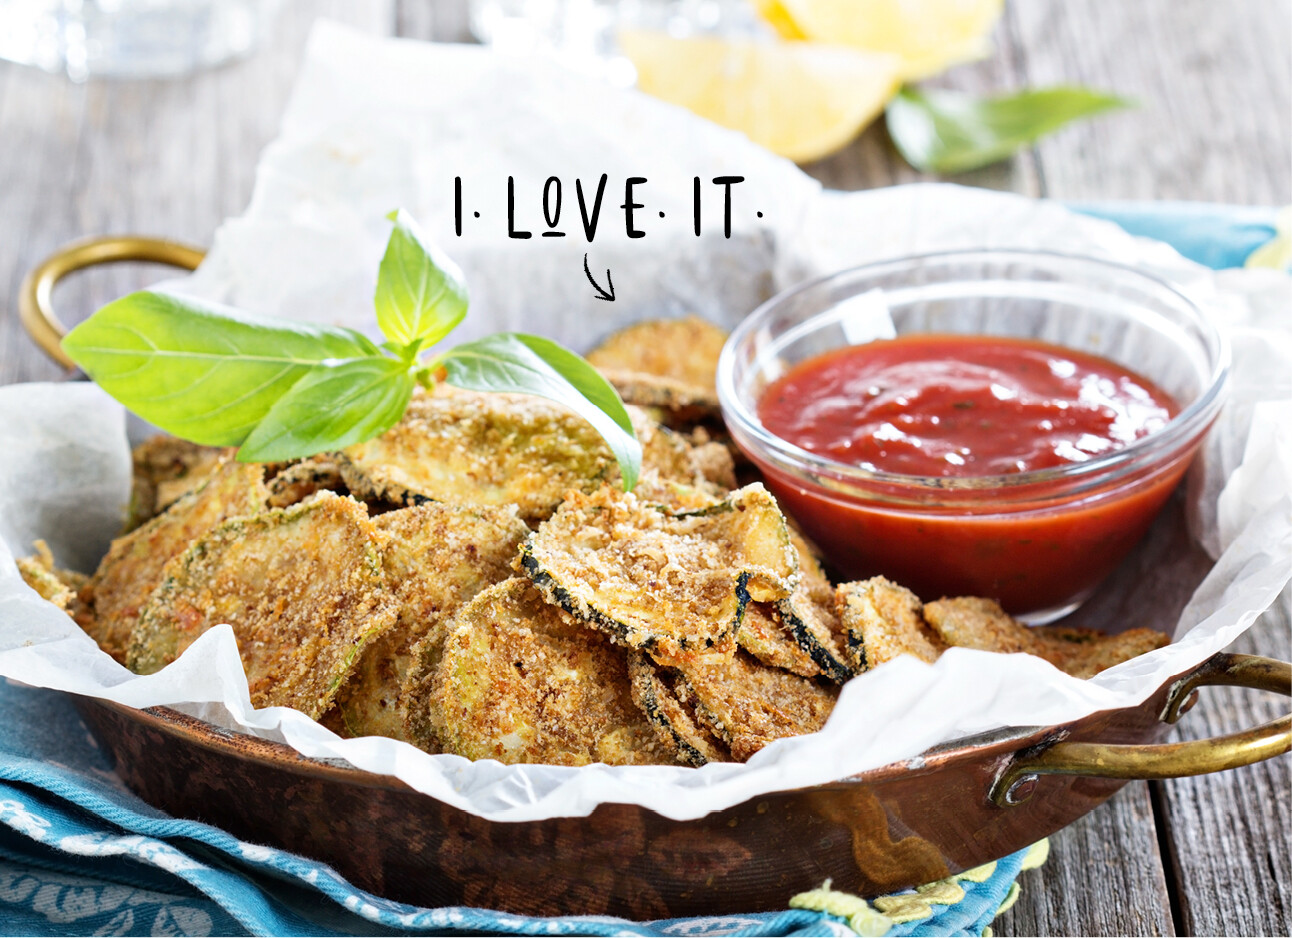 Courgette chips met rode dipsaus